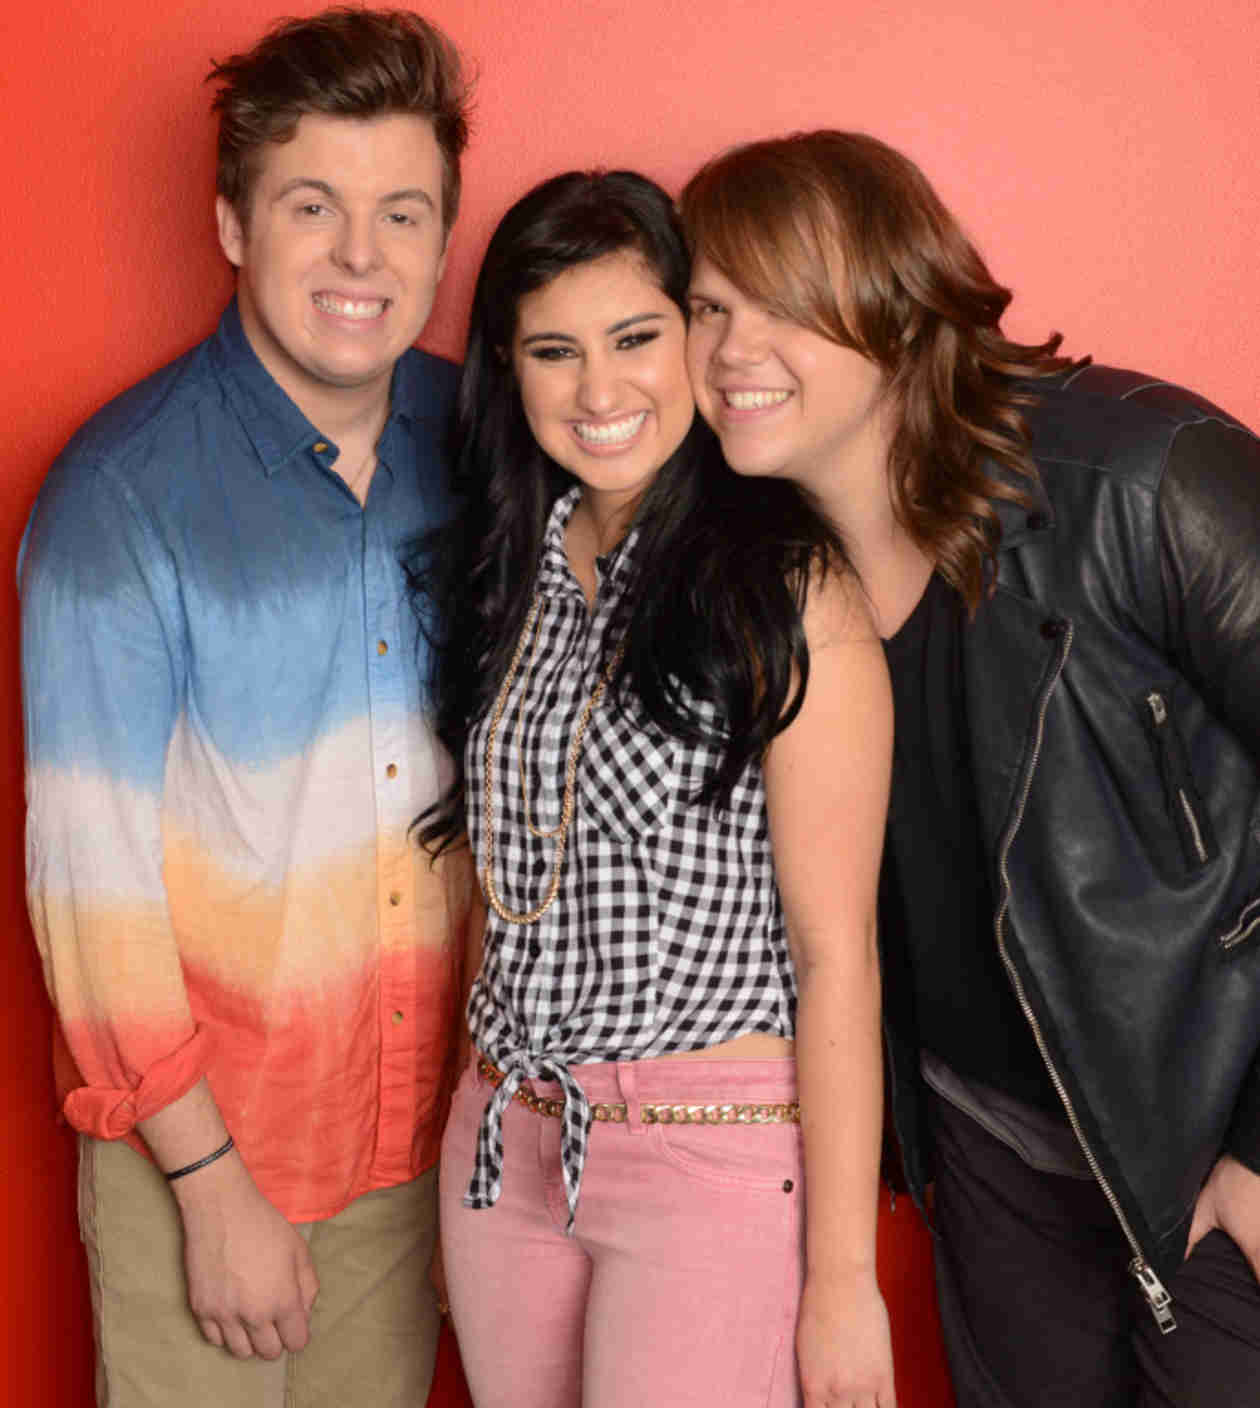 Who Are the American Idol 2014 Top 2? [SPOILER] Gets Eliminated on May 15, 2014